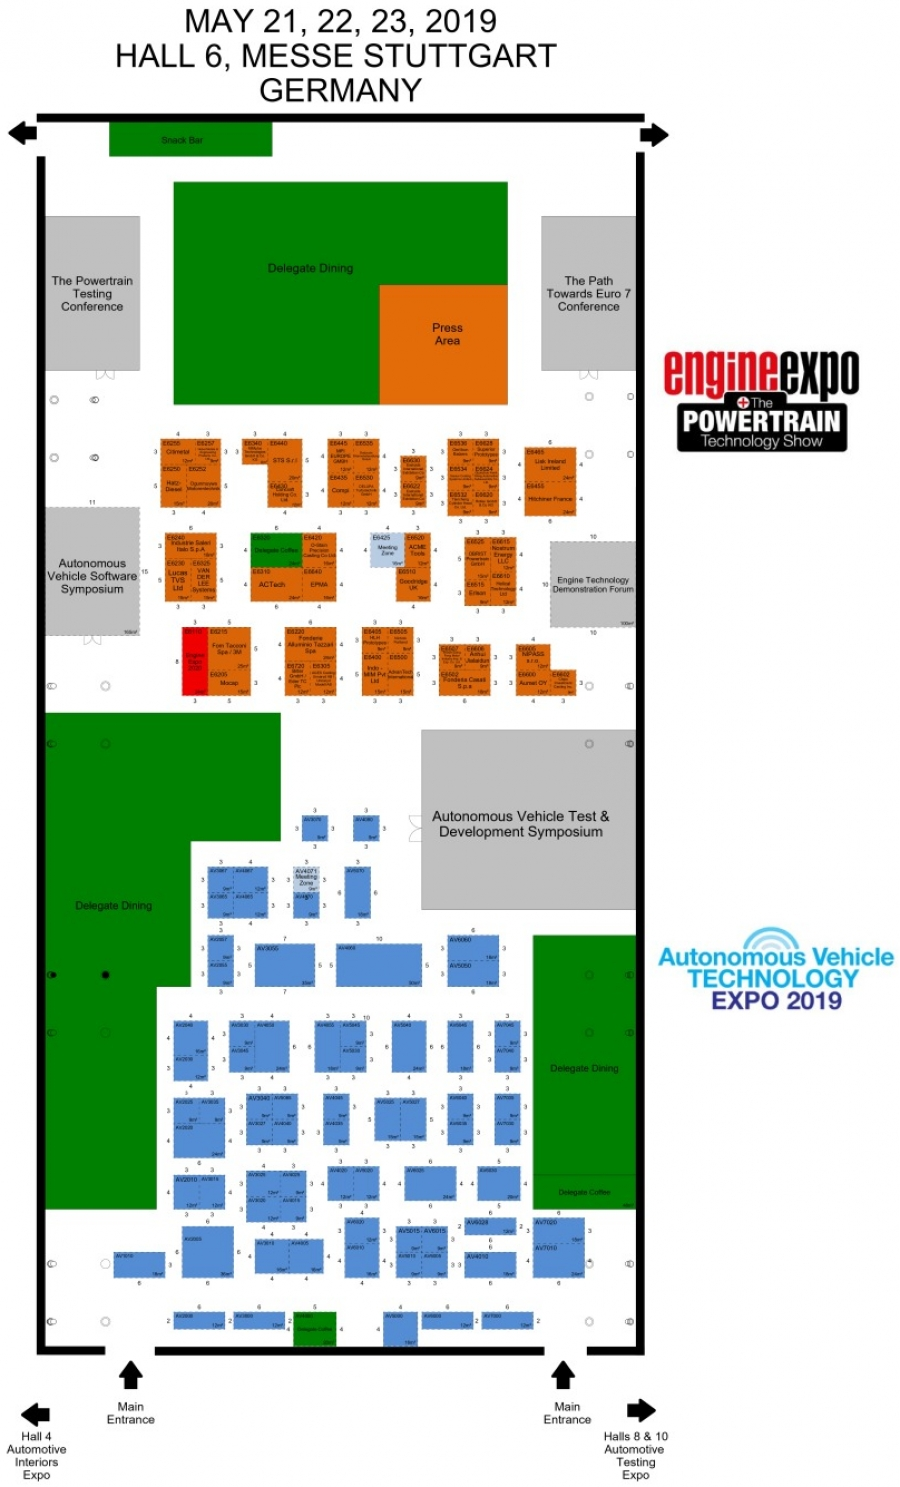 Floor plan of Engine Expo's exhibitor layout